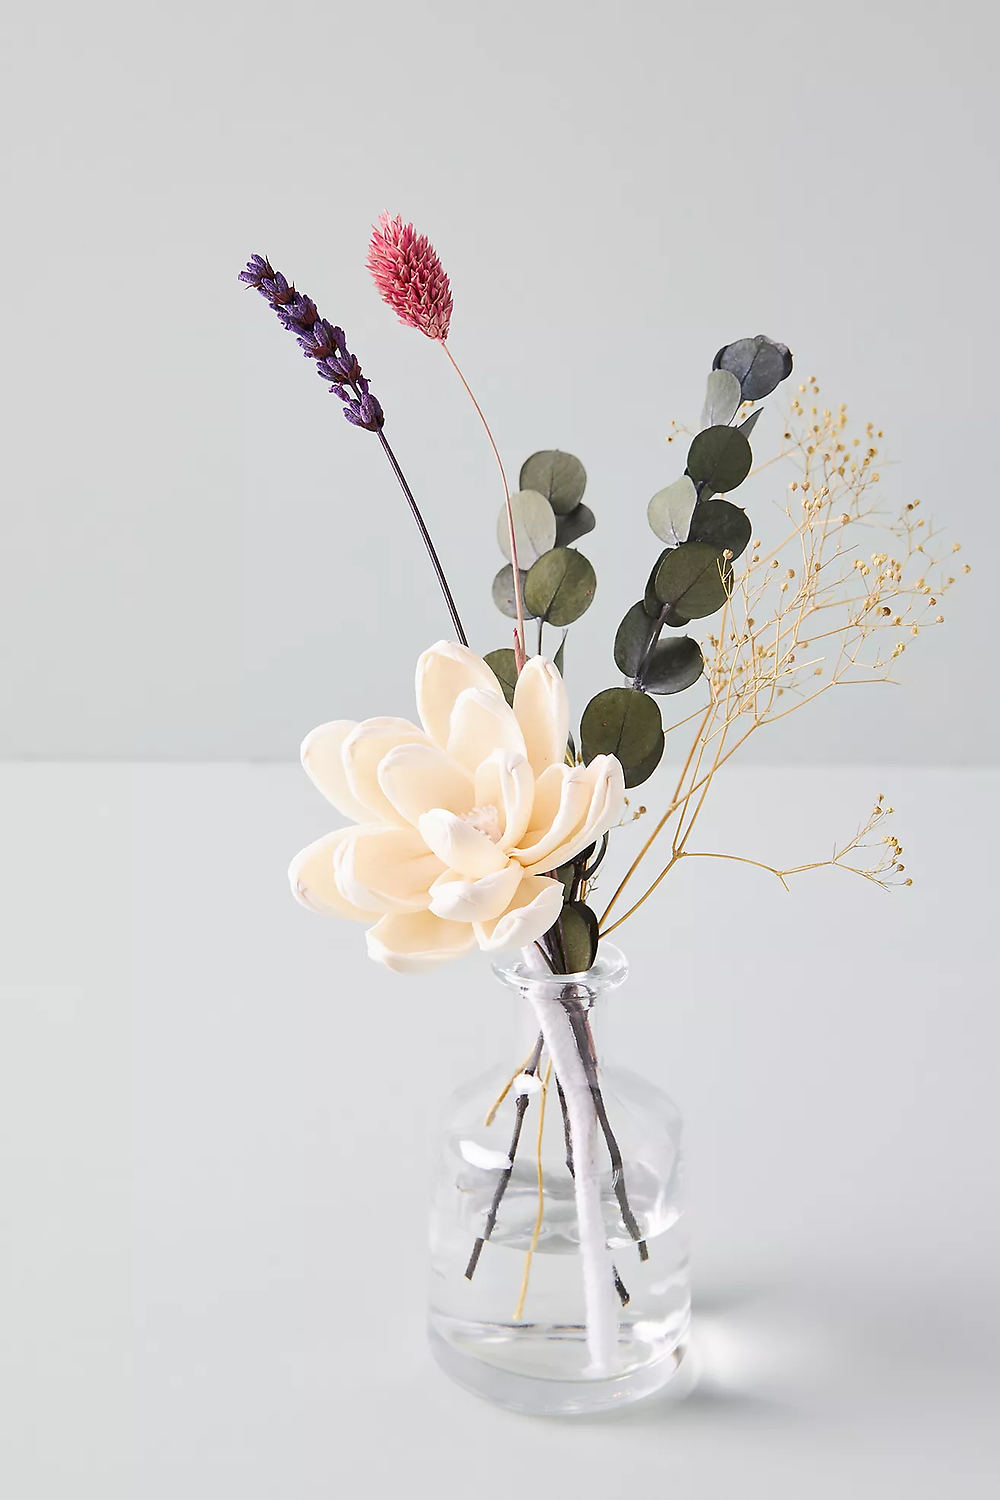 paper flower bouquet diffuser mother's day gift